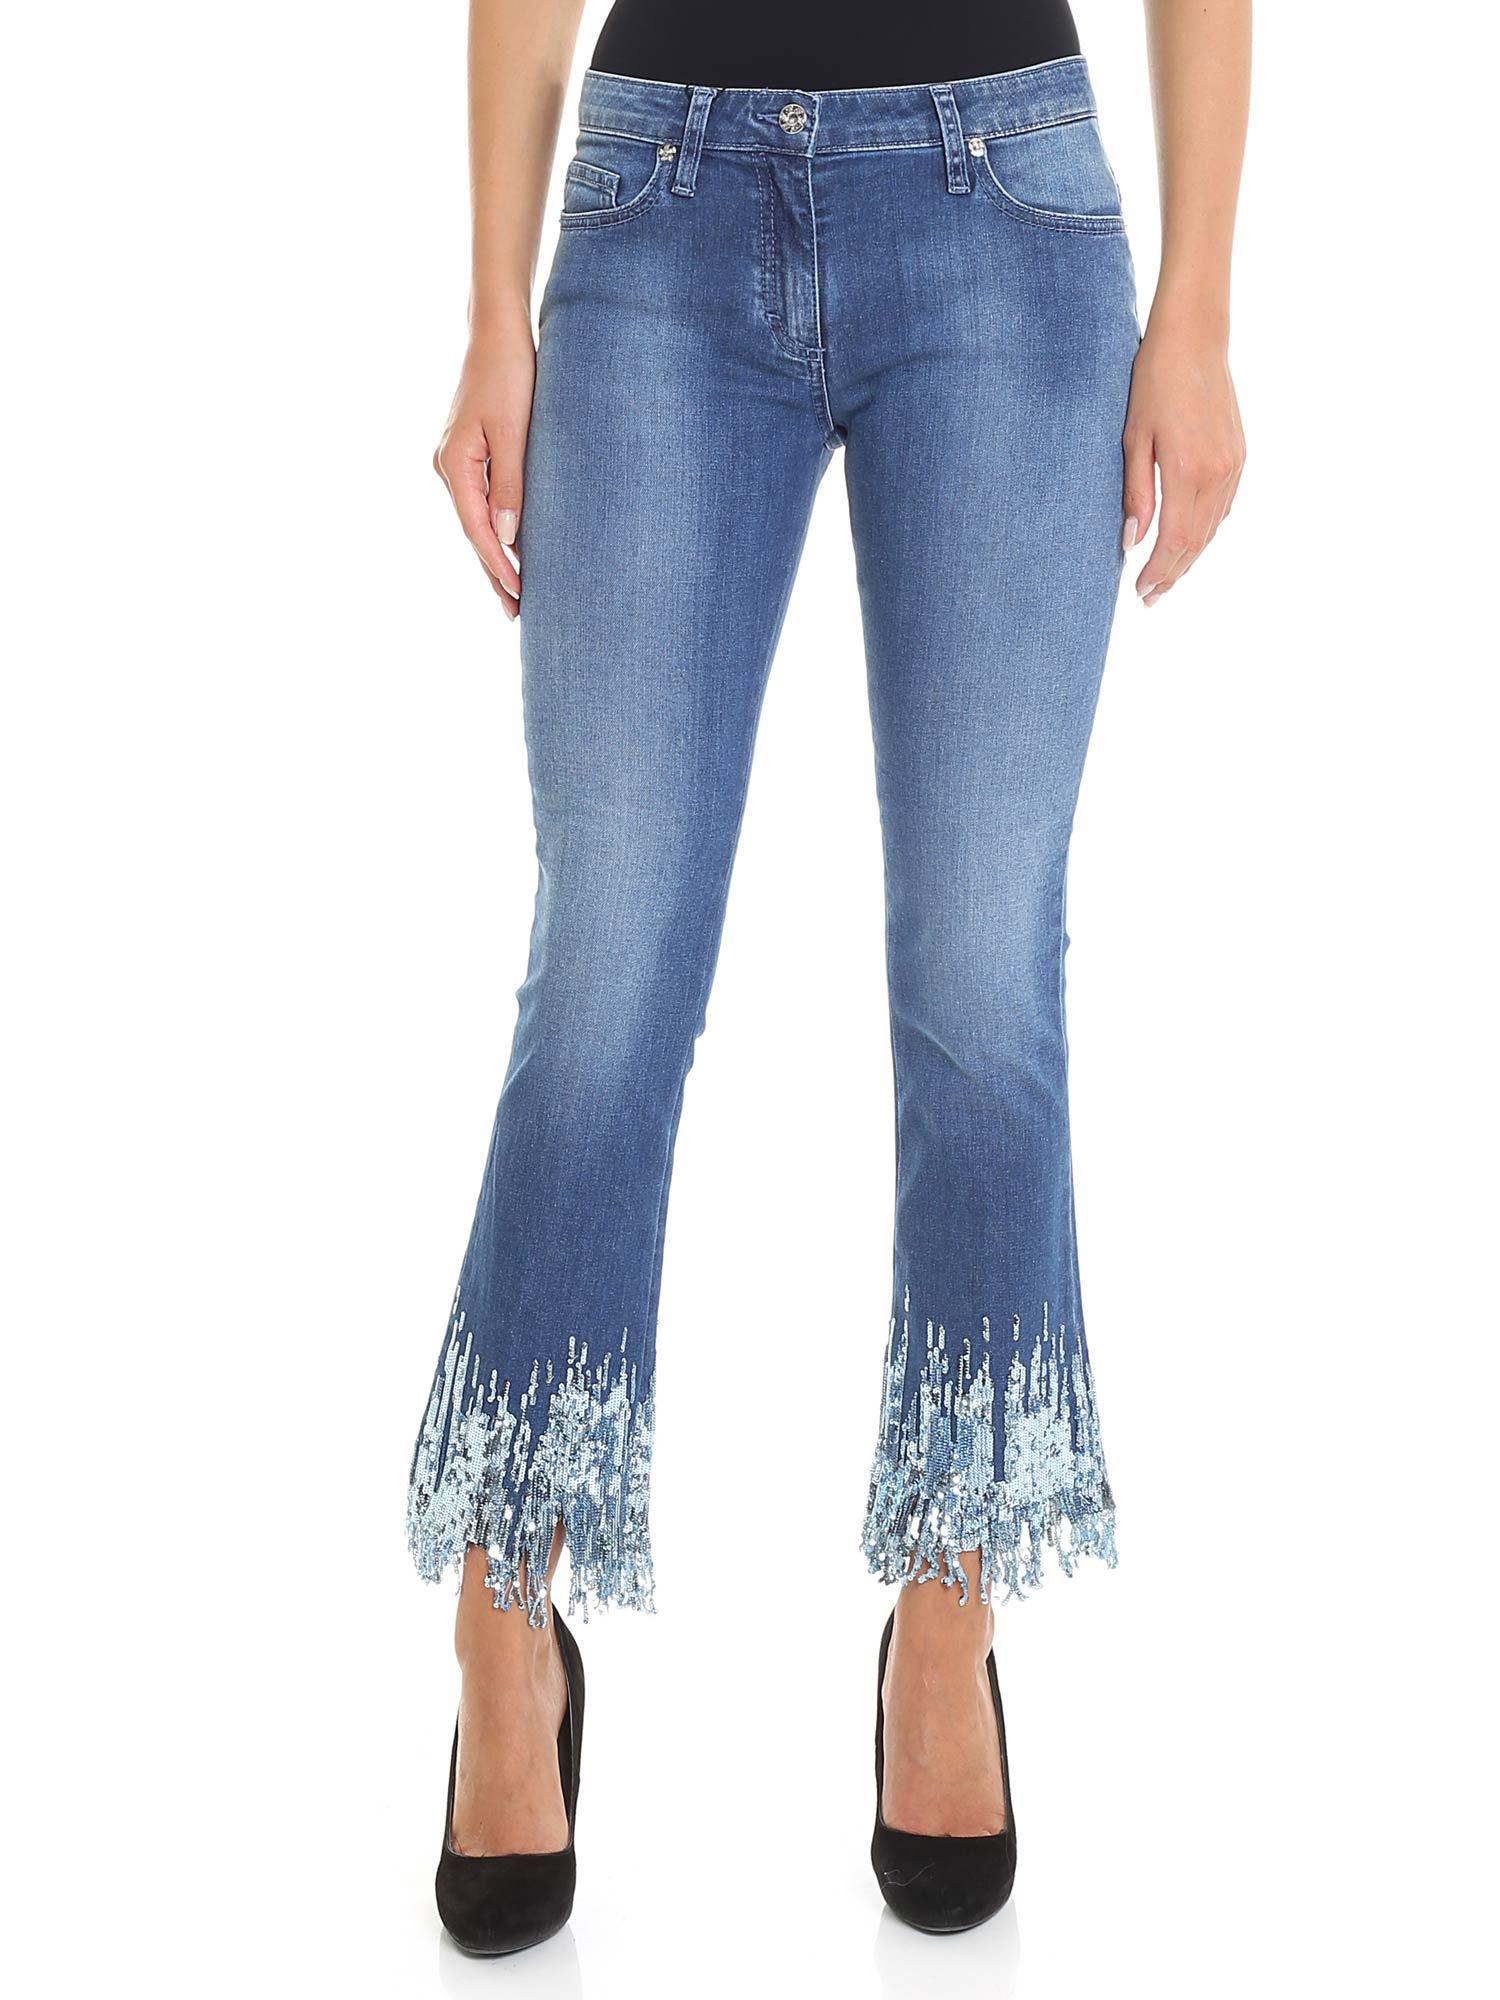 612c80c2 Blumarine - Light Blue Bootcut Jeans With Micro Sequins - Lyst. View  fullscreen